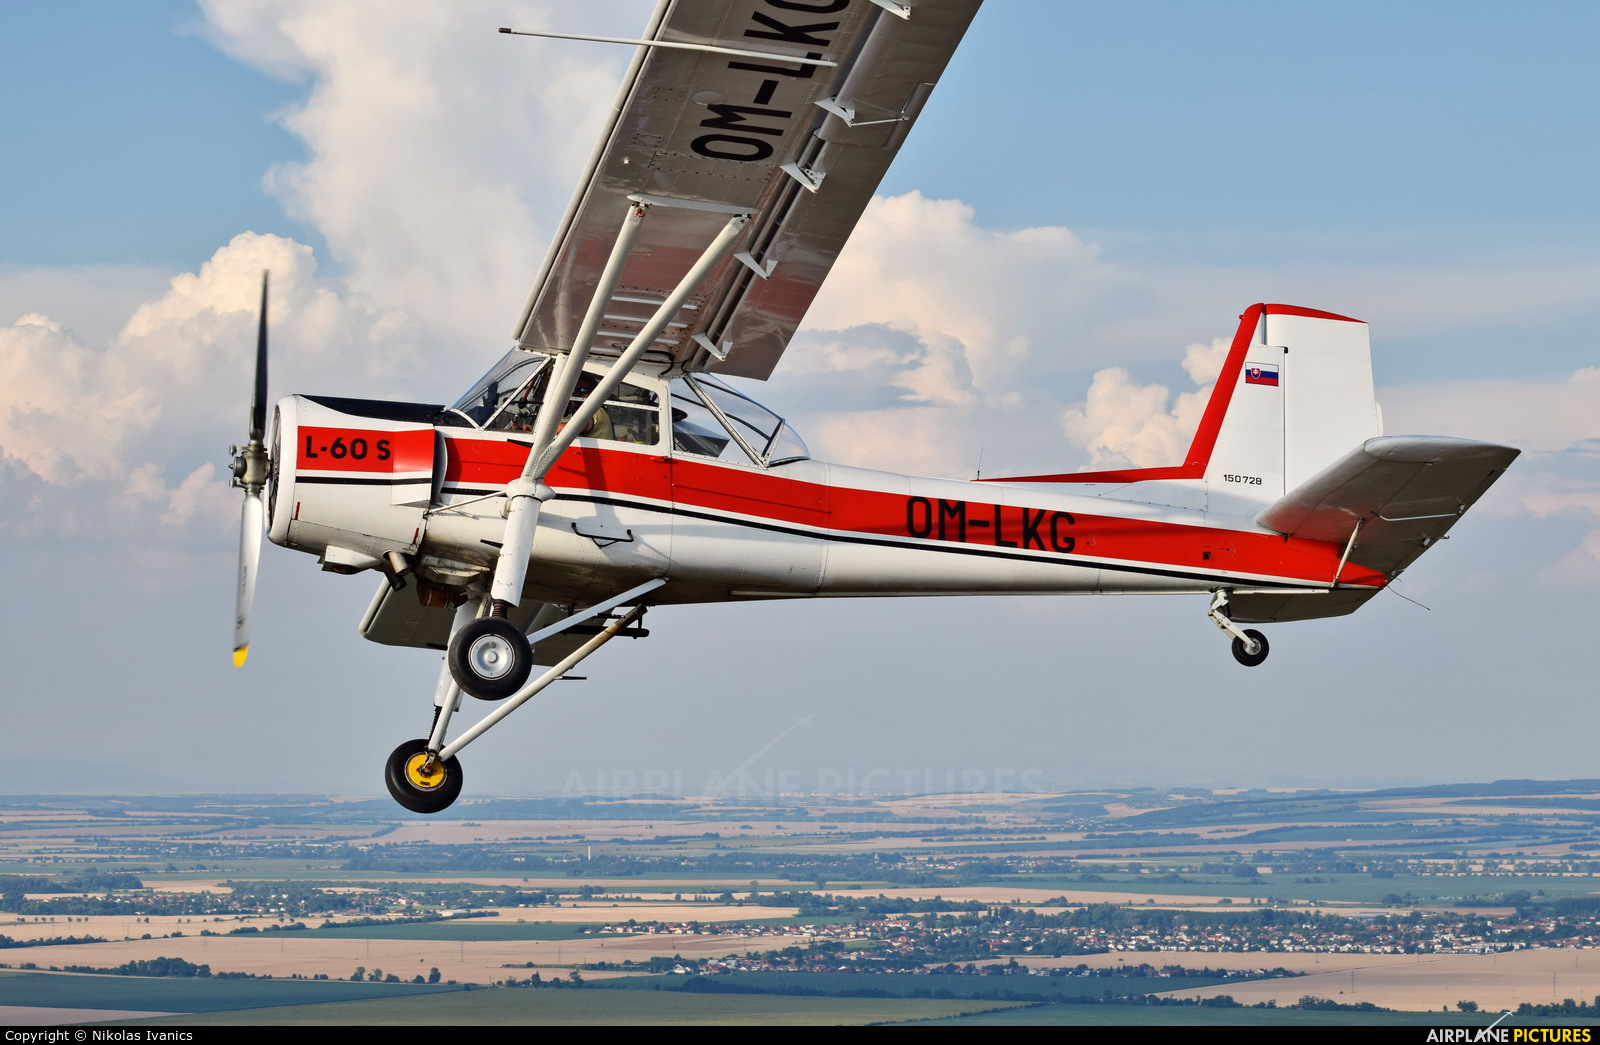 Private OM-LKG aircraft at In Flight - Slovakia